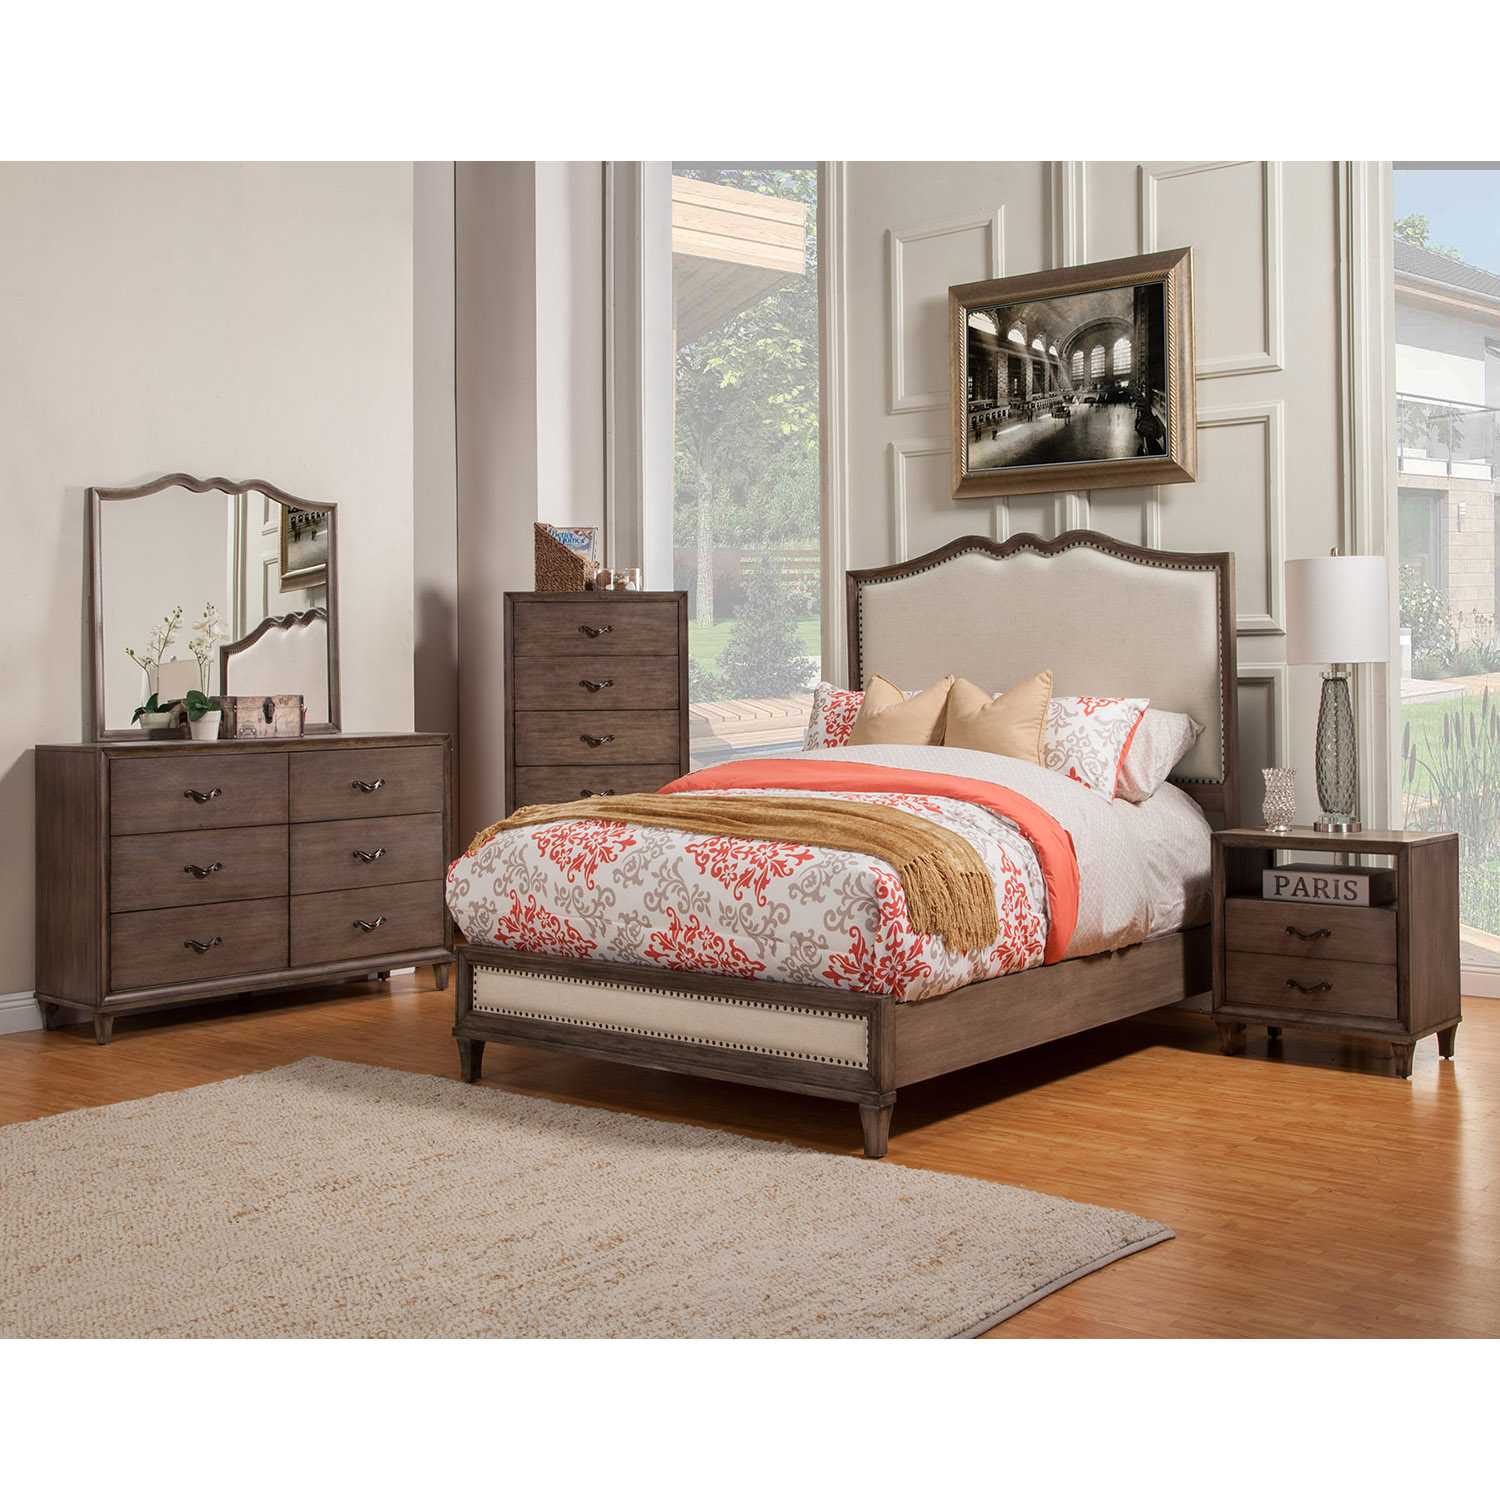 charleston bedroom set - antique gray | dcg stores